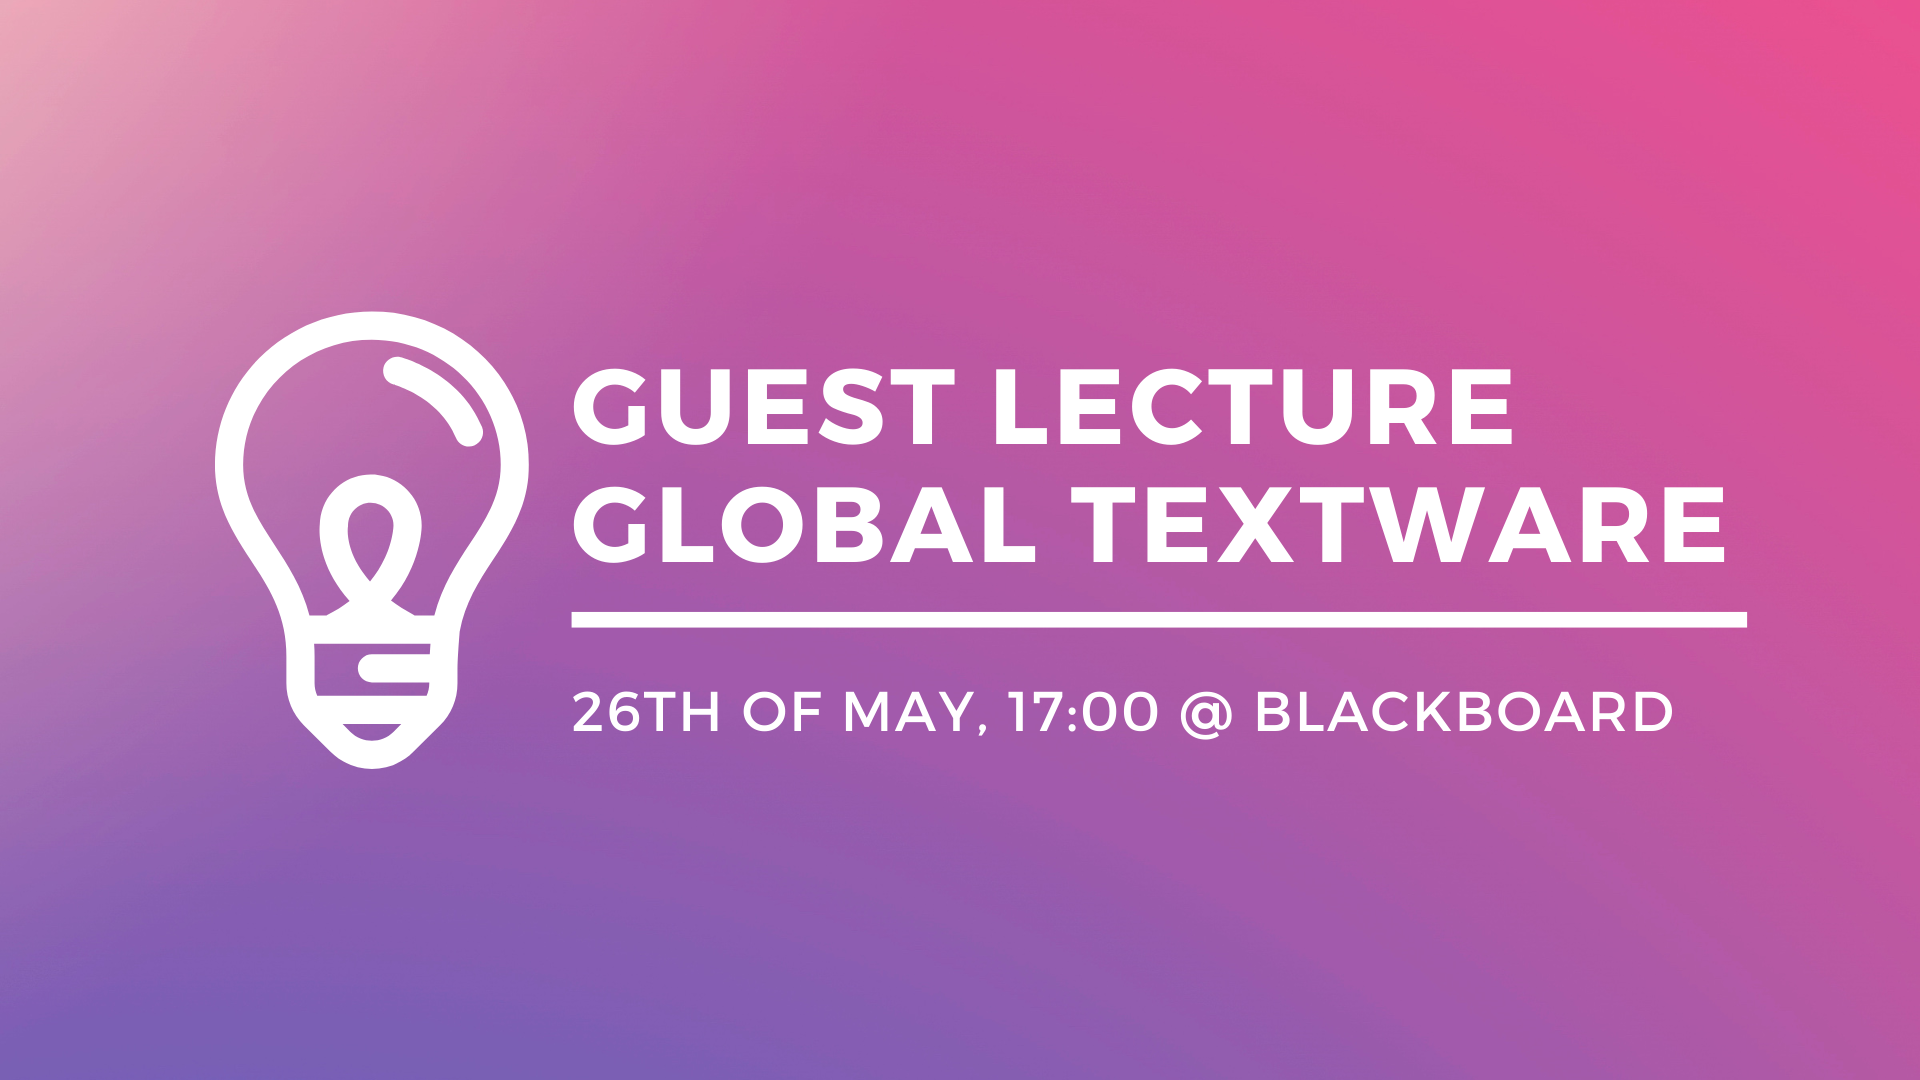 Guest Lecture: Global Textware